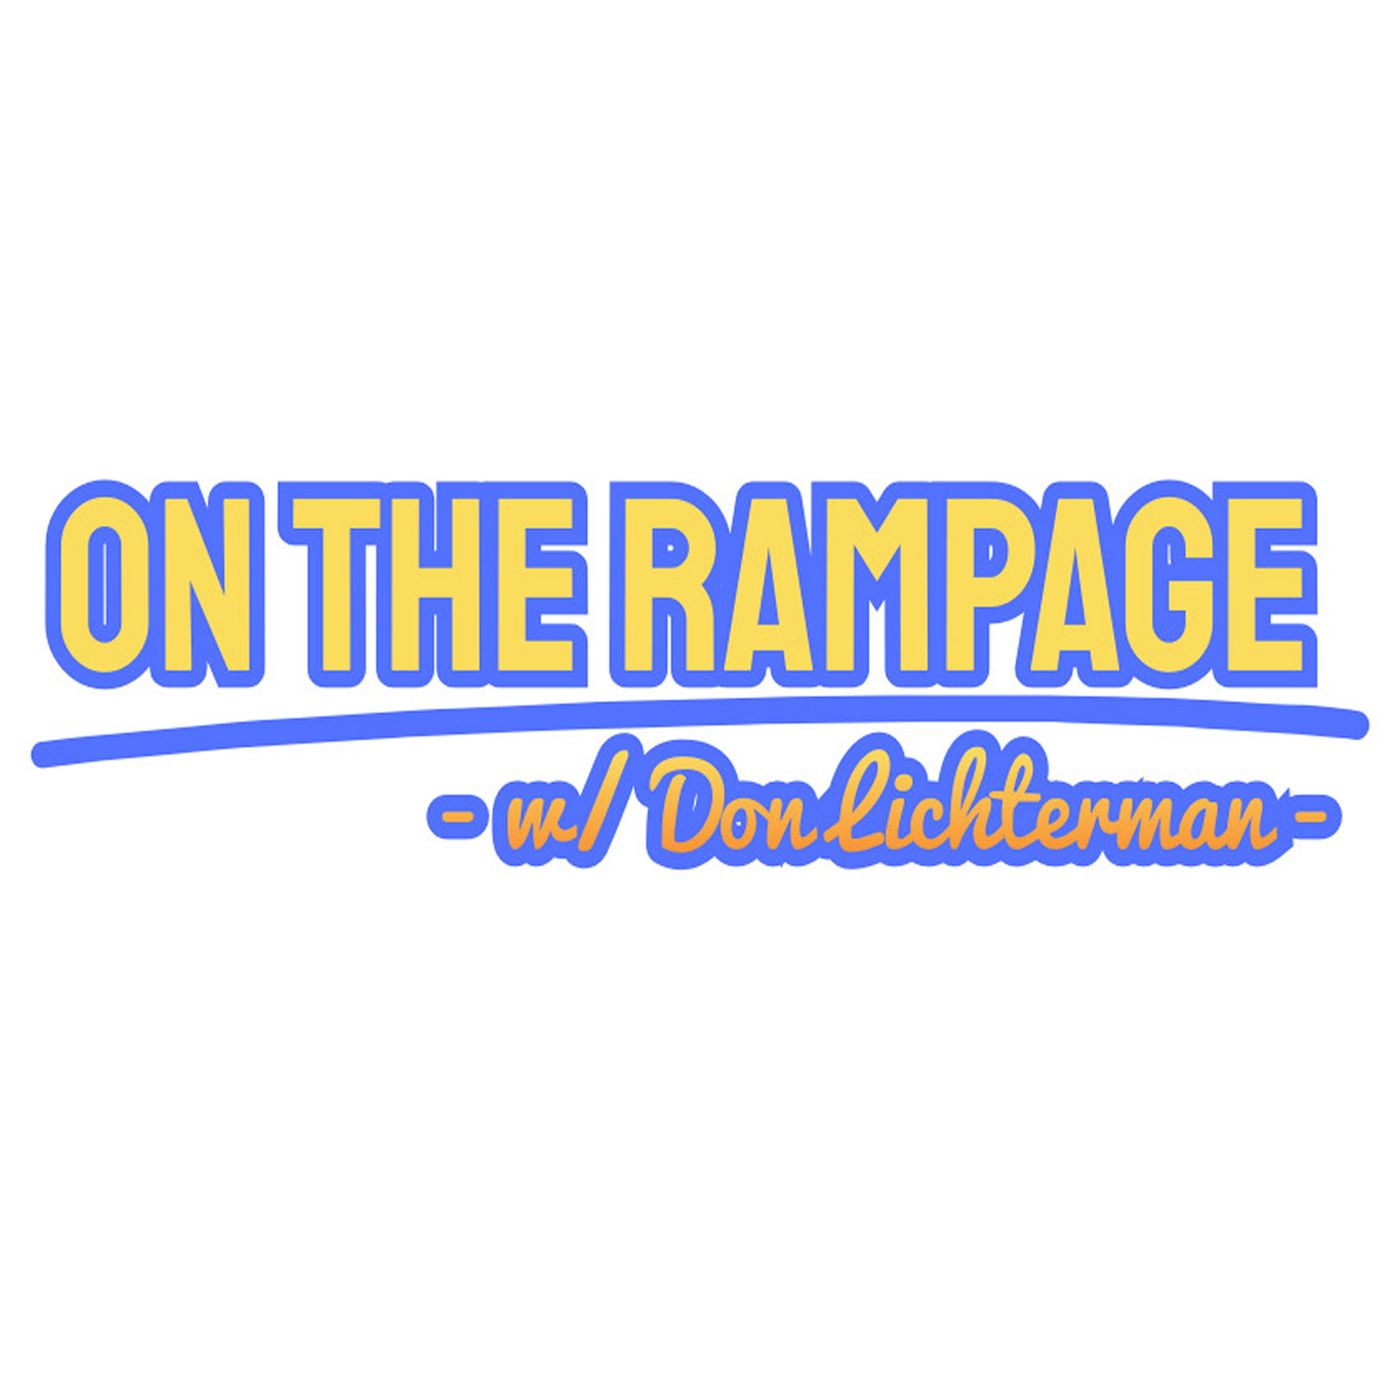 On The Rampage w/ Don Lichterman, William Barr, Louis DeJoy, Rams, WWE & Pussy from The Sopranos!